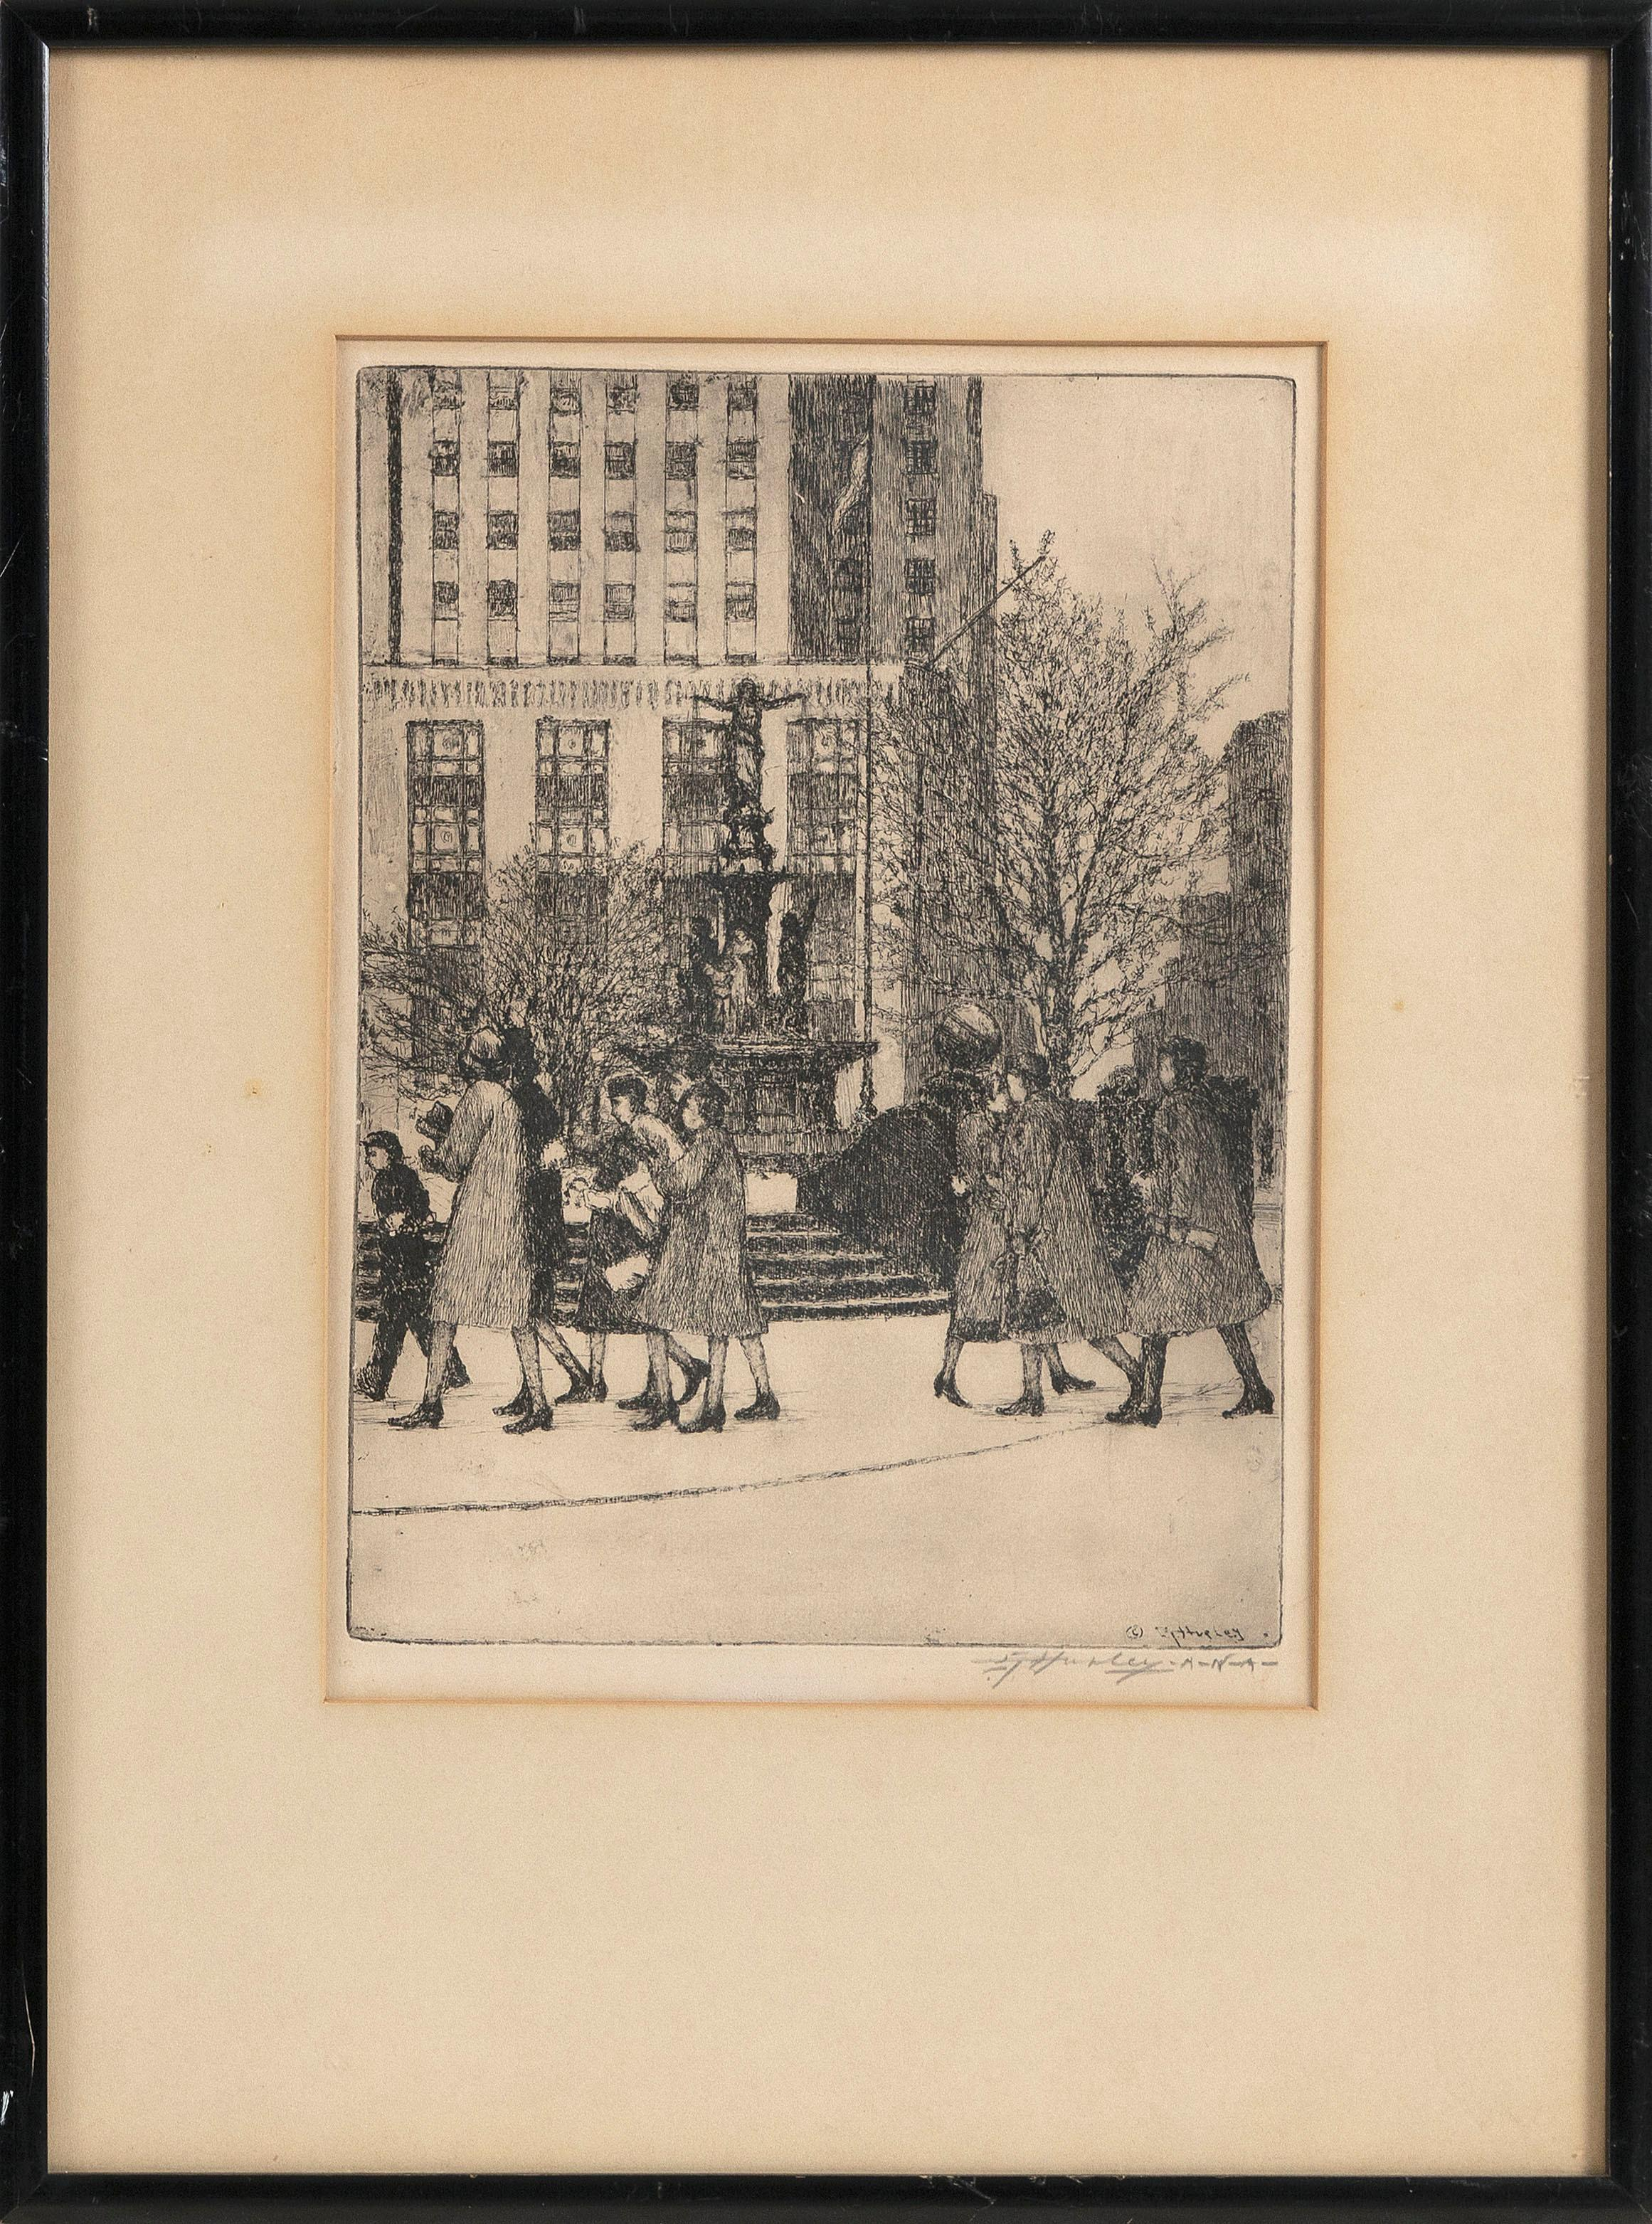 """EDWARD T. HURLEY (Ohio, 1869-1950), """"Fountain Square, Cincinnati""""., Dry point etching, 8.75"""" x 11.75"""" to the plate line. Framed 20.75"""" x 15.75""""."""